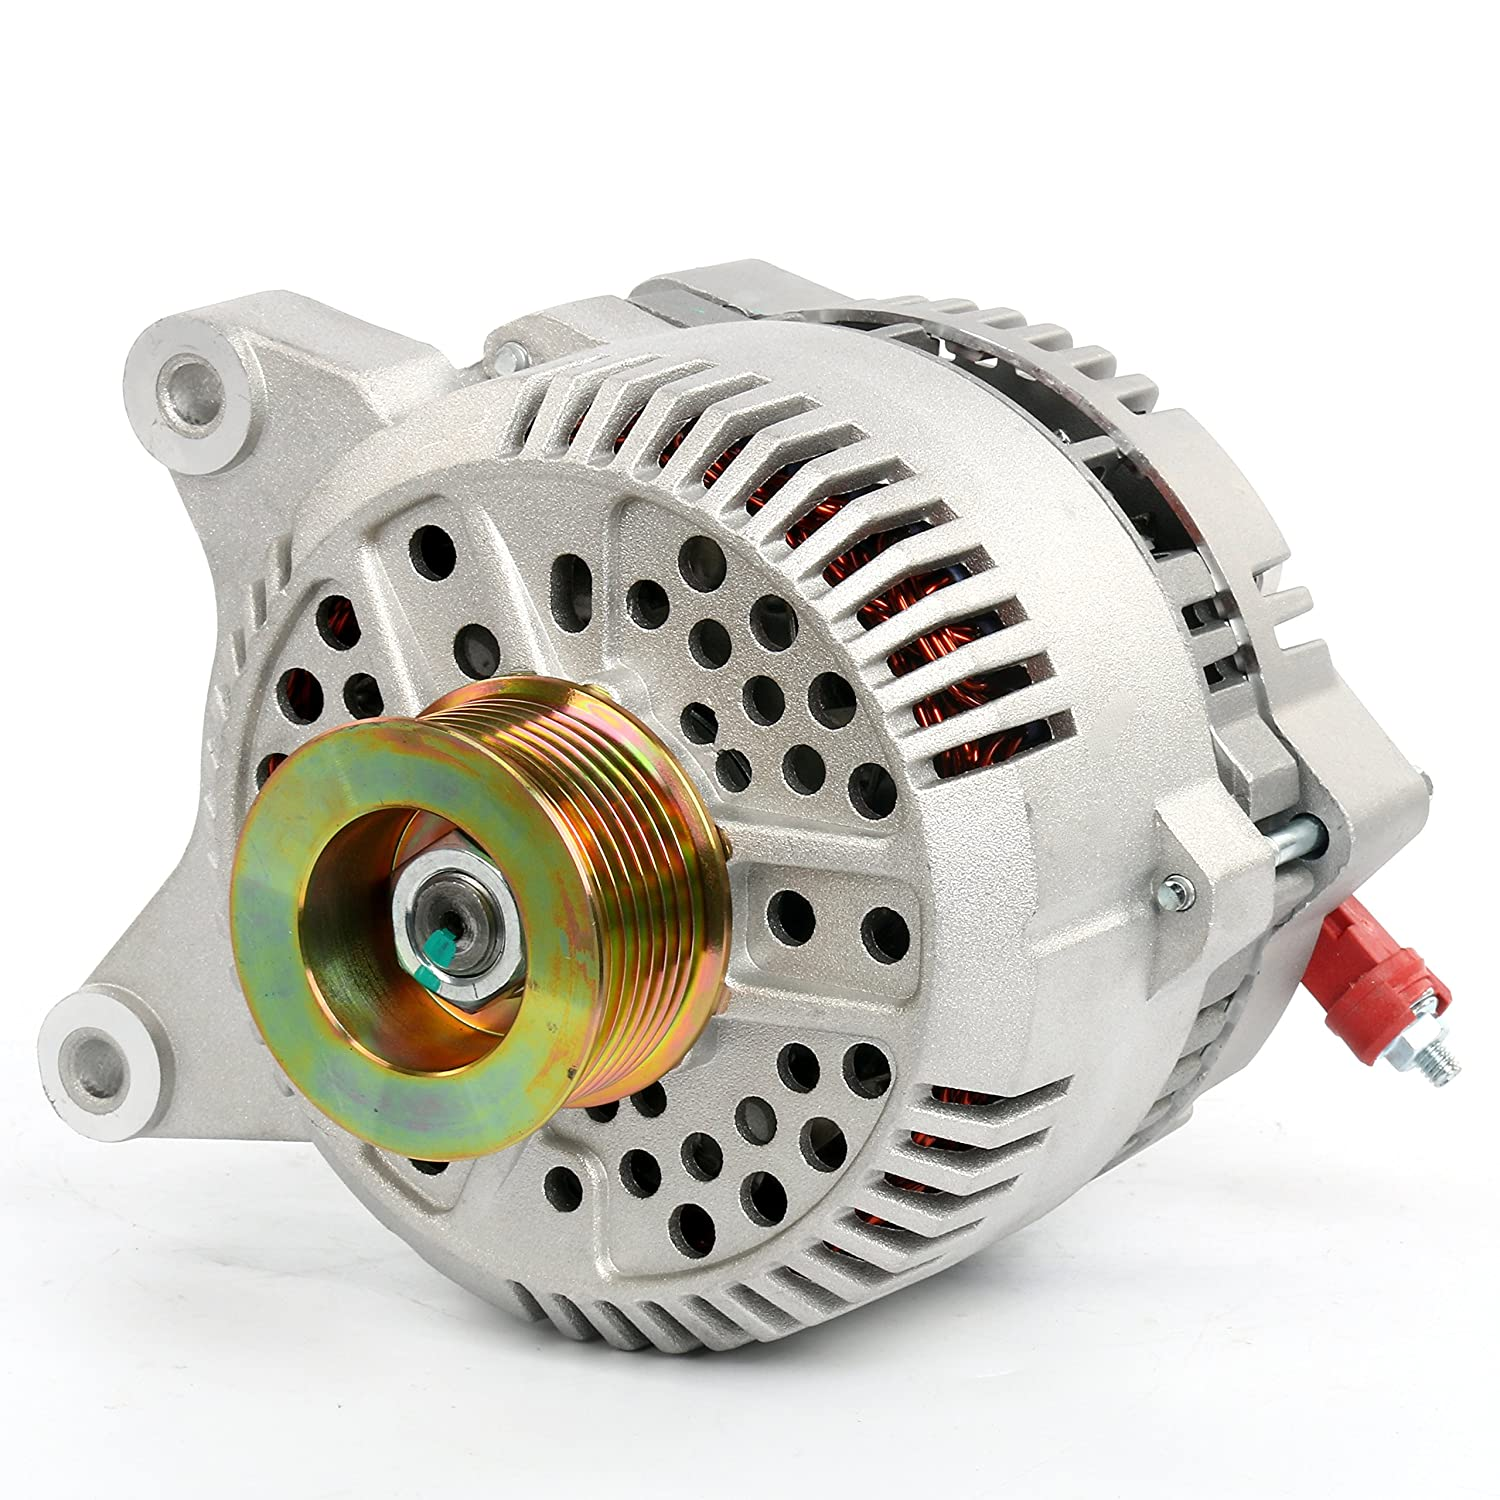 YAETEK 100% New Alternator (JJ-0083-7791N) for Ford F150 F250&F350 Econoline Expedition 4.6L 5.4L (1997-2001) Yaemart Corportation